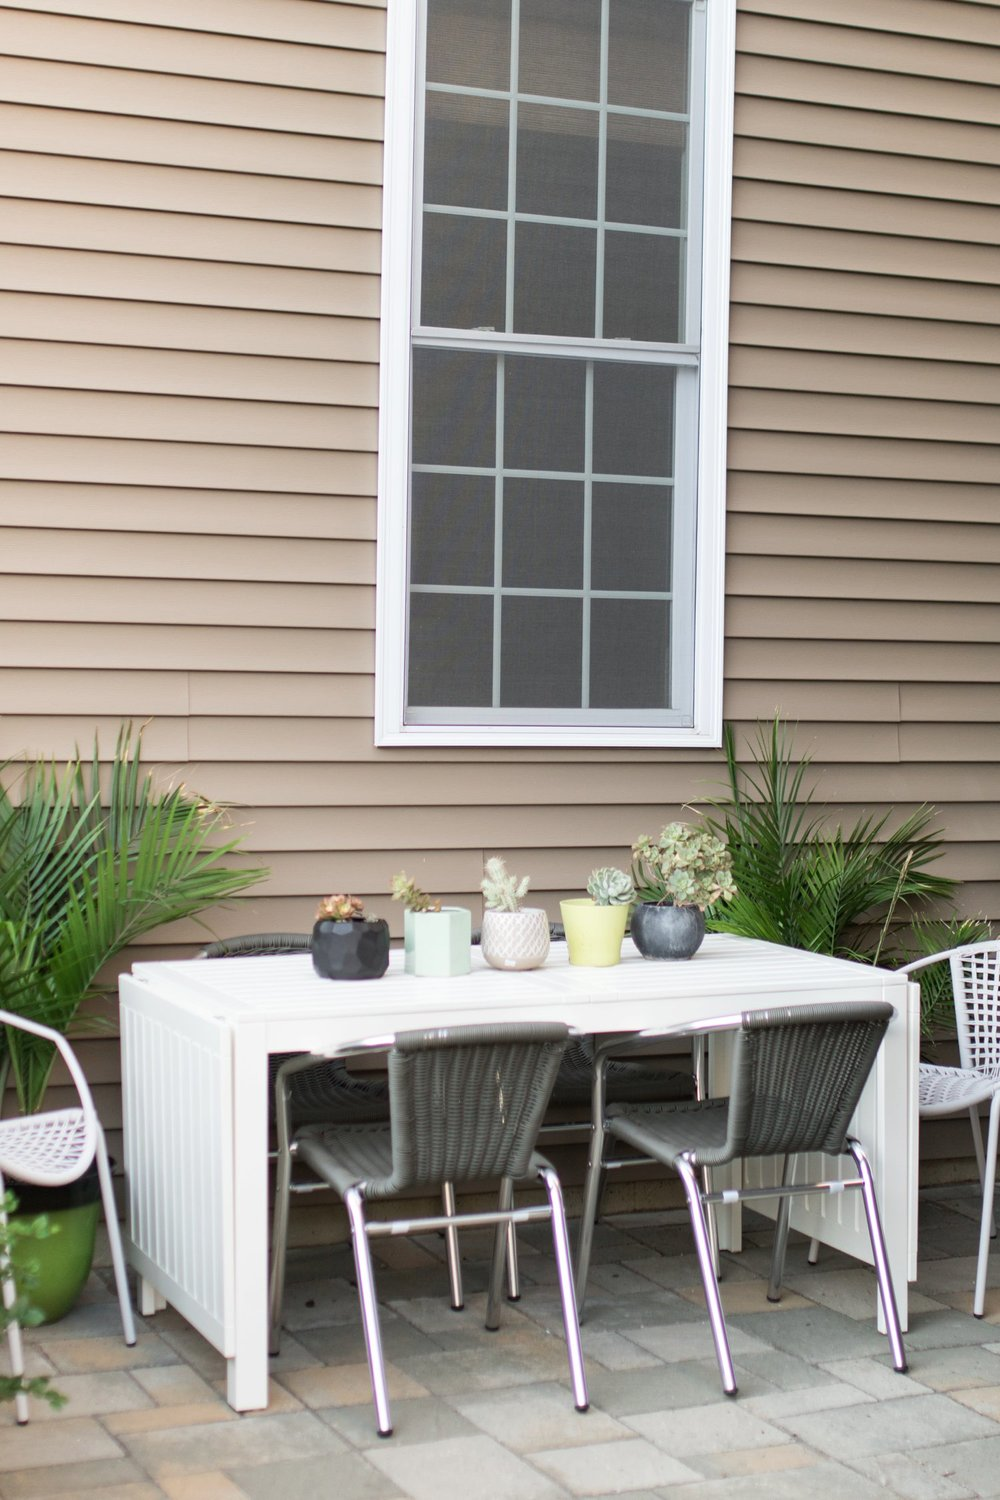 Sabrina Reis Photography | Minneapolis Photography | Patio Update_0001.jpg